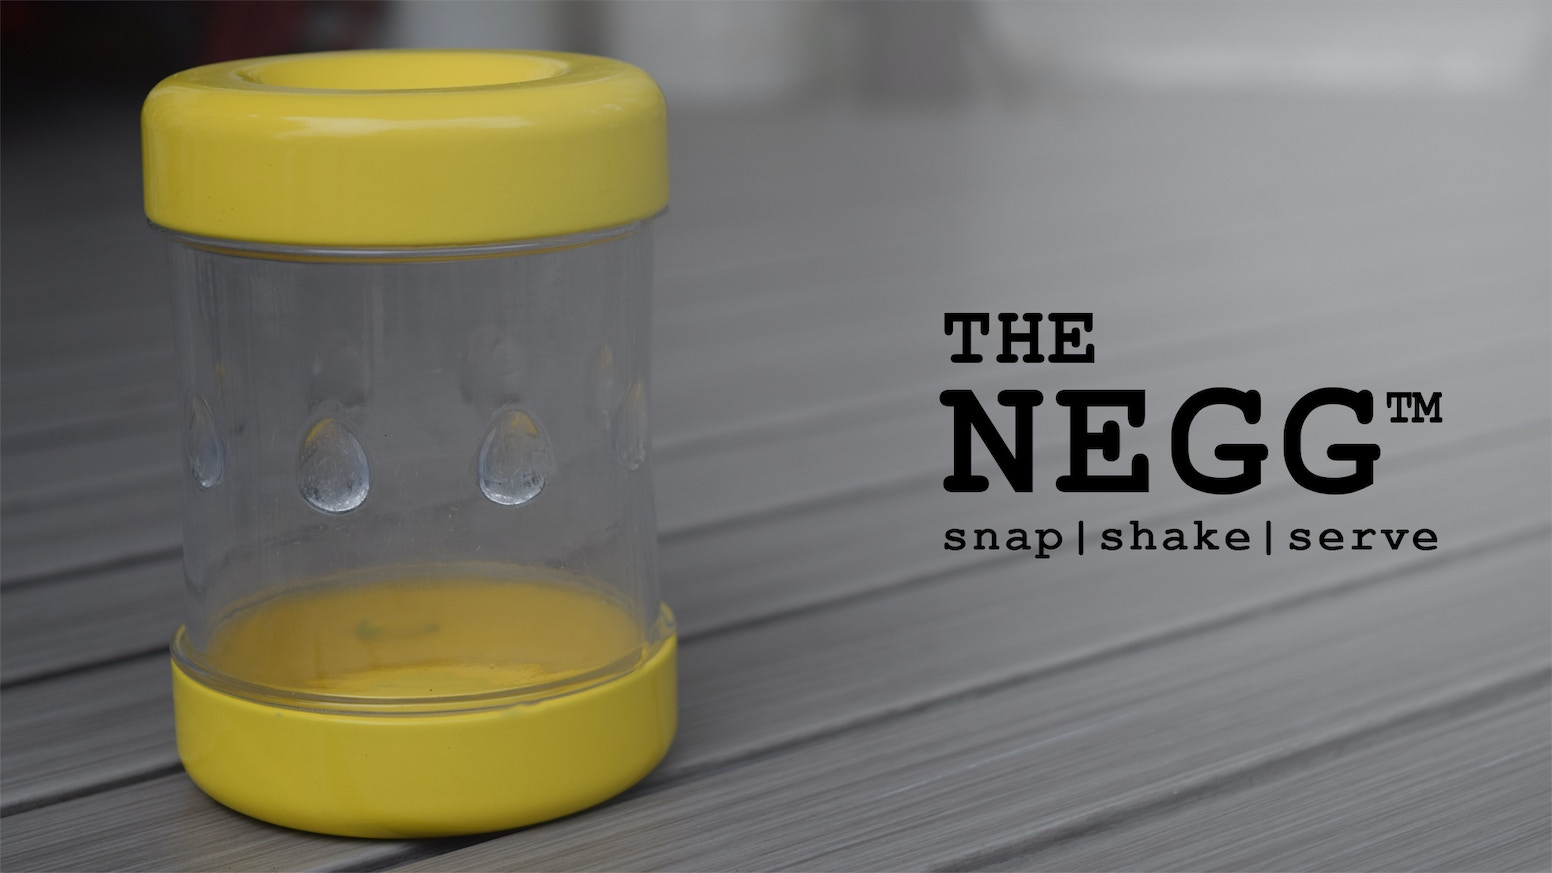 The Negg™ Maker makes peeling eggs ingeniously simple, fast and fun. Order today and join our growing family of Negg™ Heads. MISSED THE CAMPAIGN? JUST CLICK ON THE LINK BELOW TO ORDER YOUR NEGGS™!